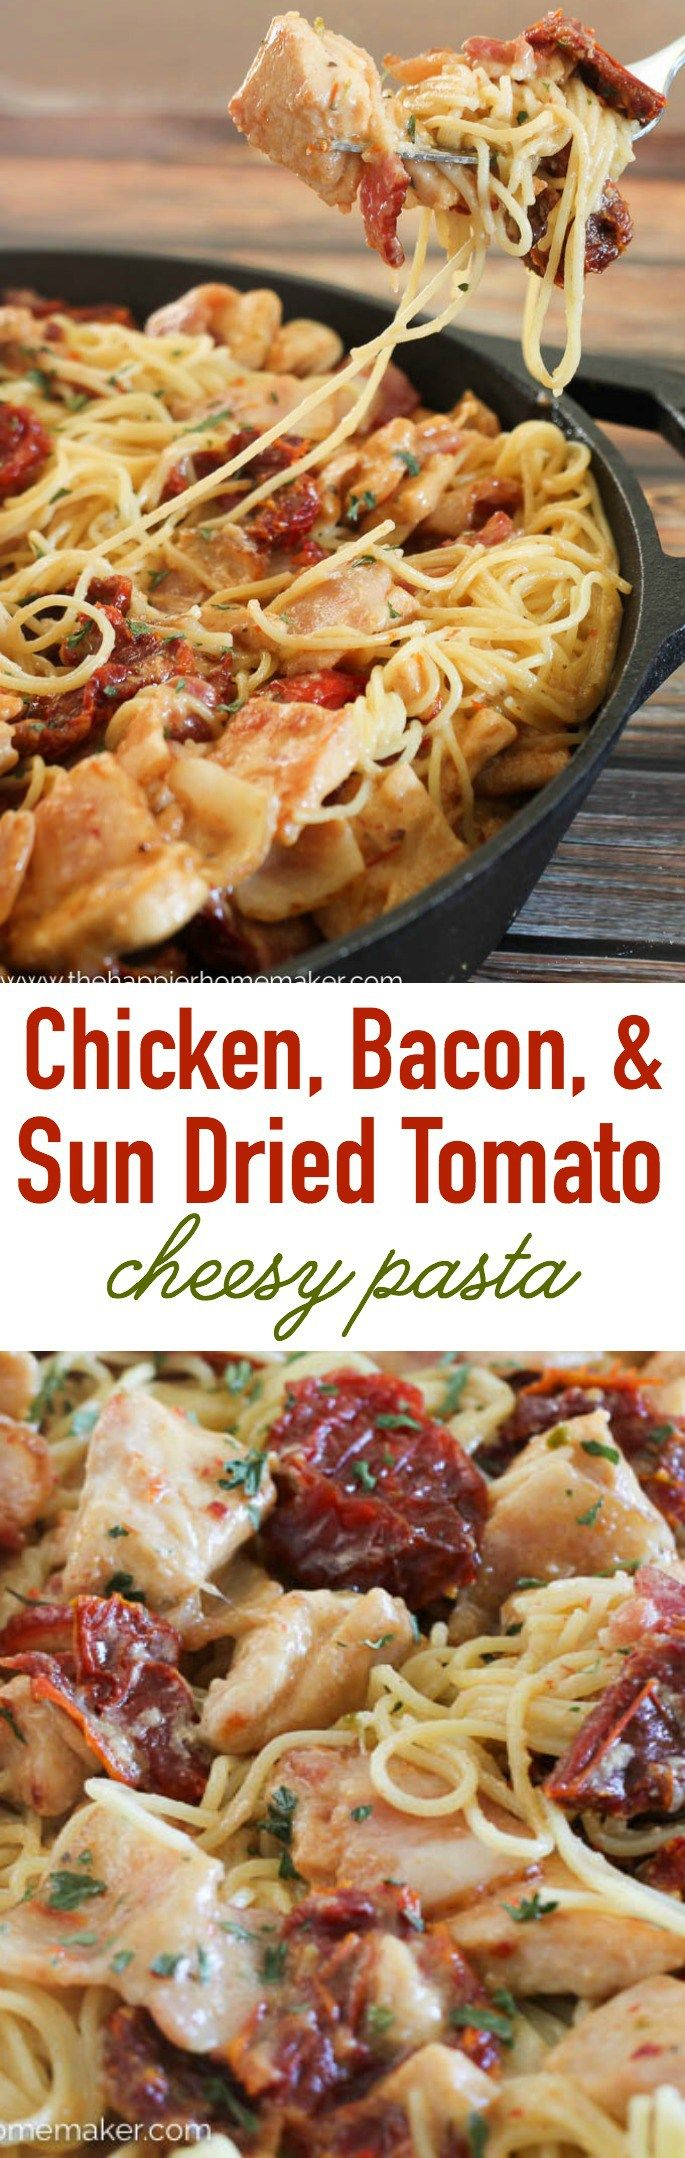 This easy weeknight dinner is full of flavor! Chicken, bacon, and sun dried tomatoes in a cheesy pasta!